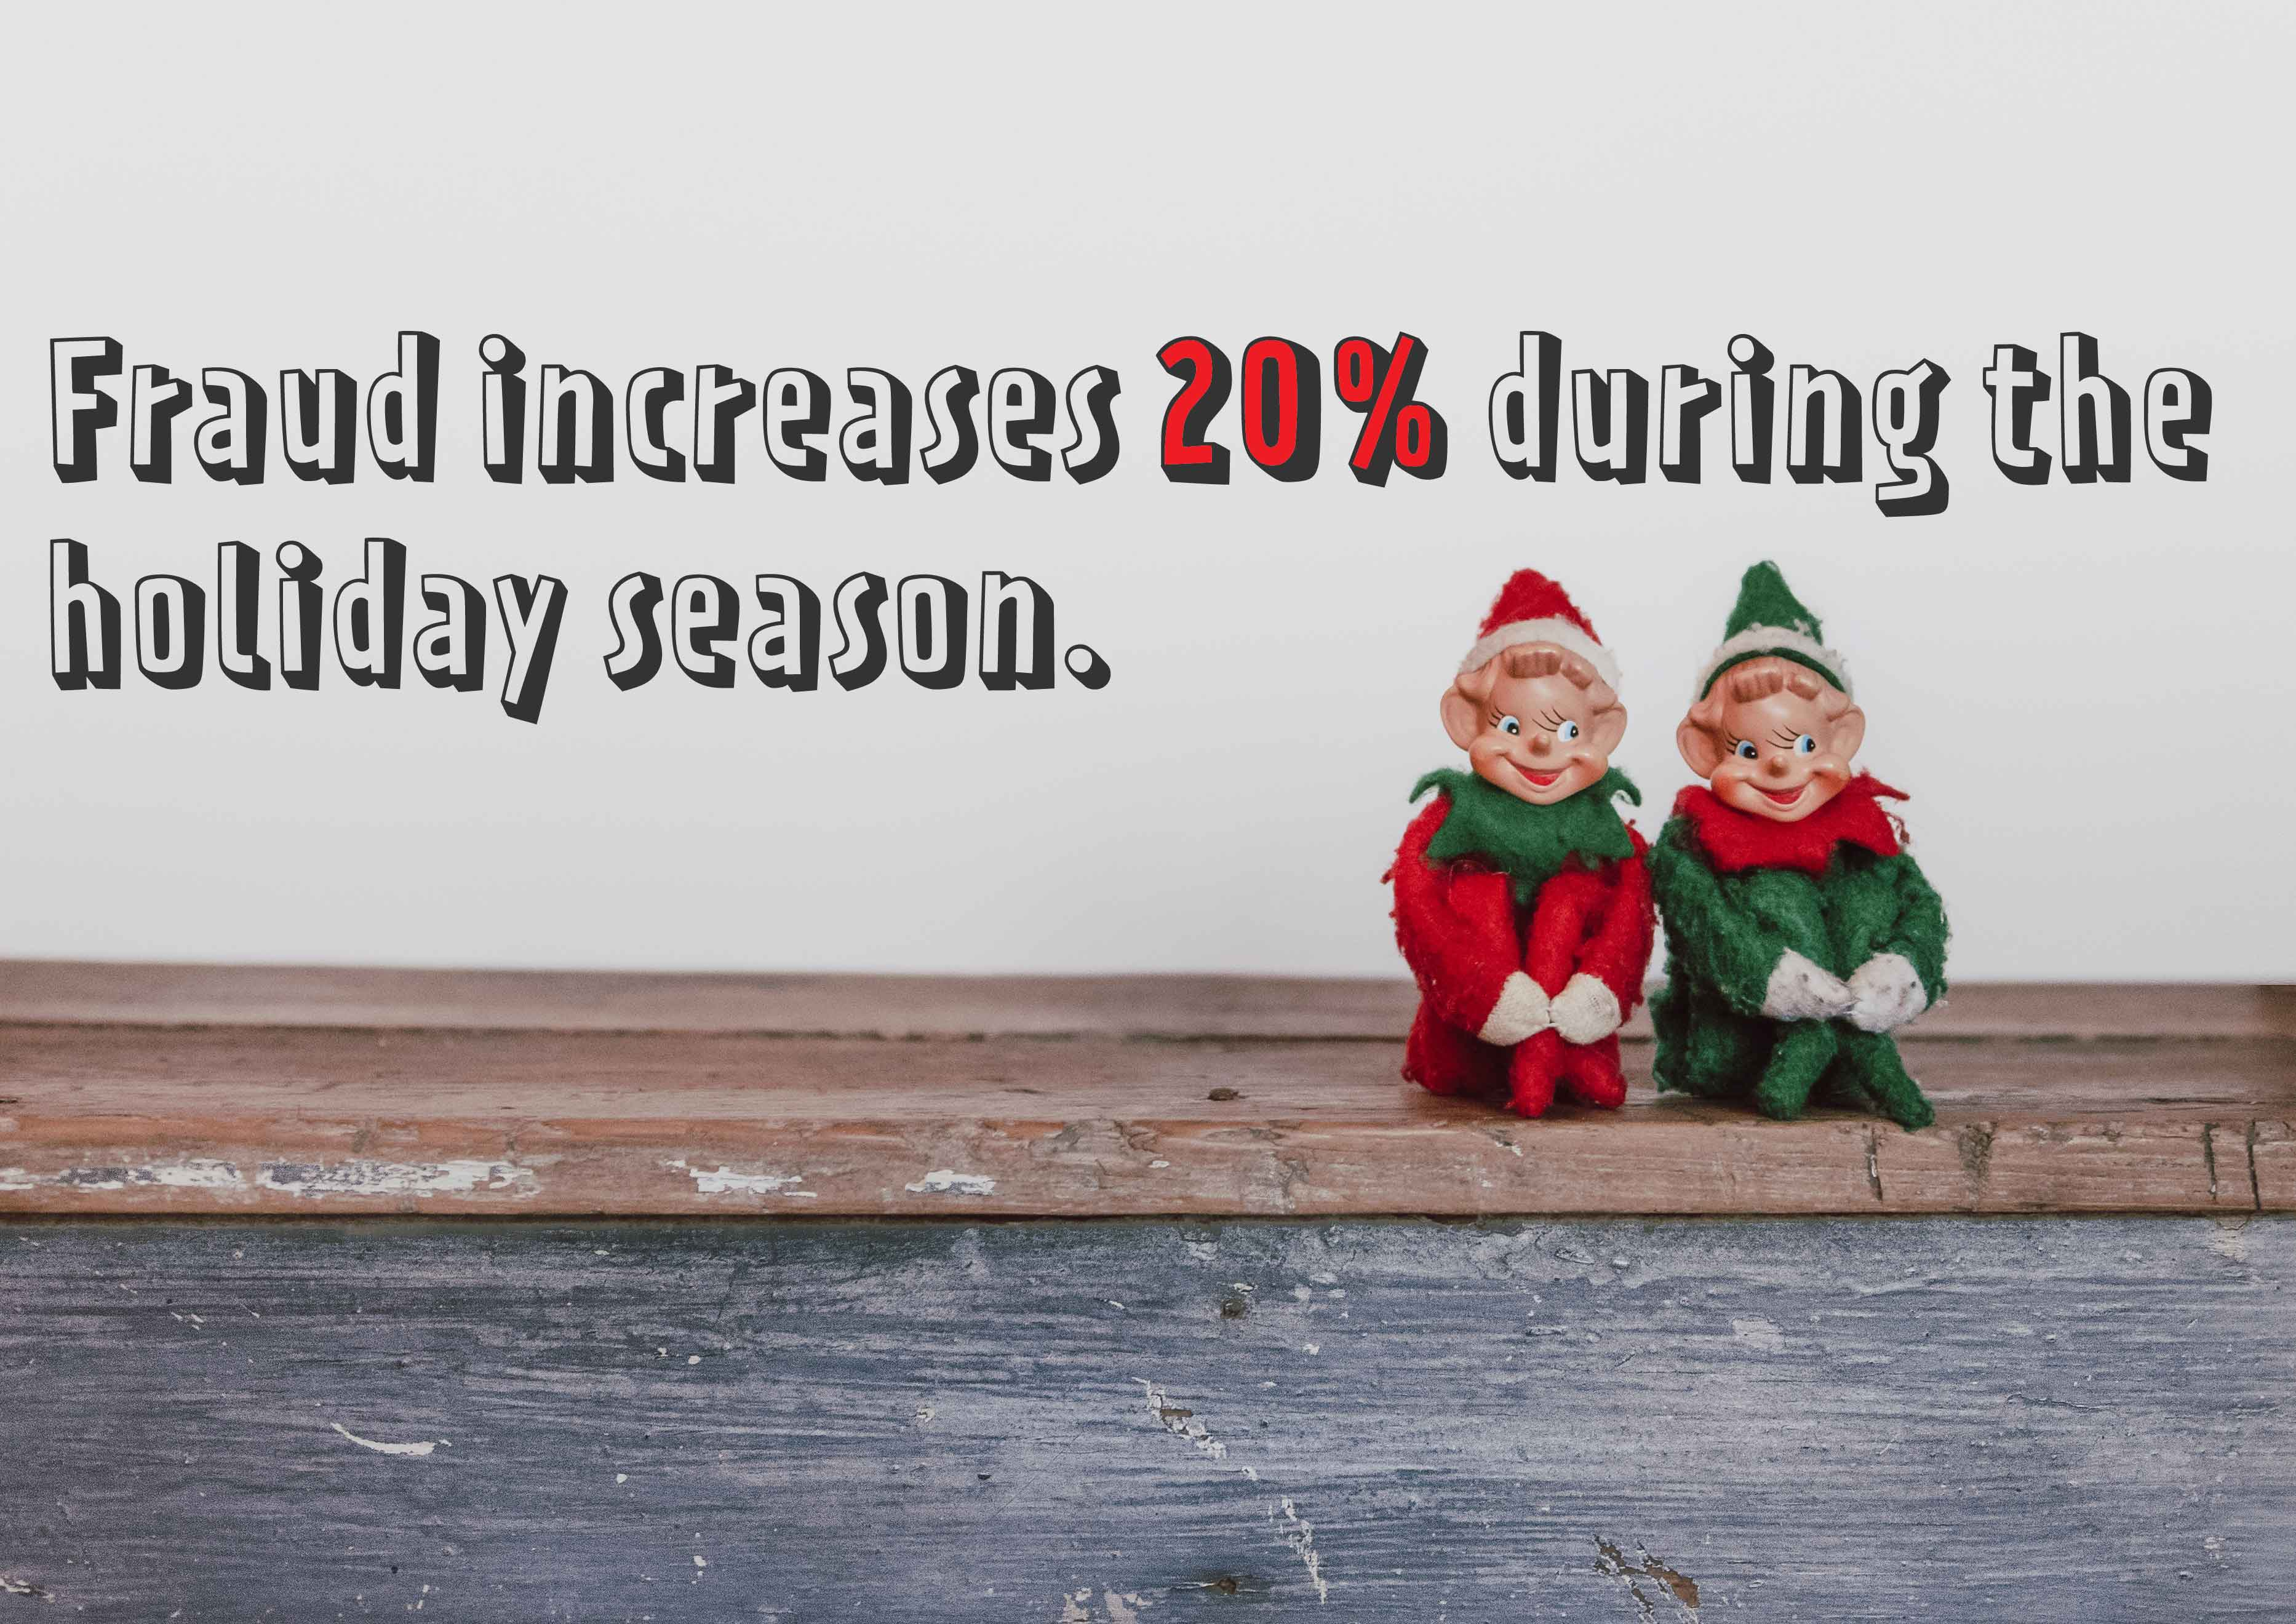 fraud increases 20% during the holiday season